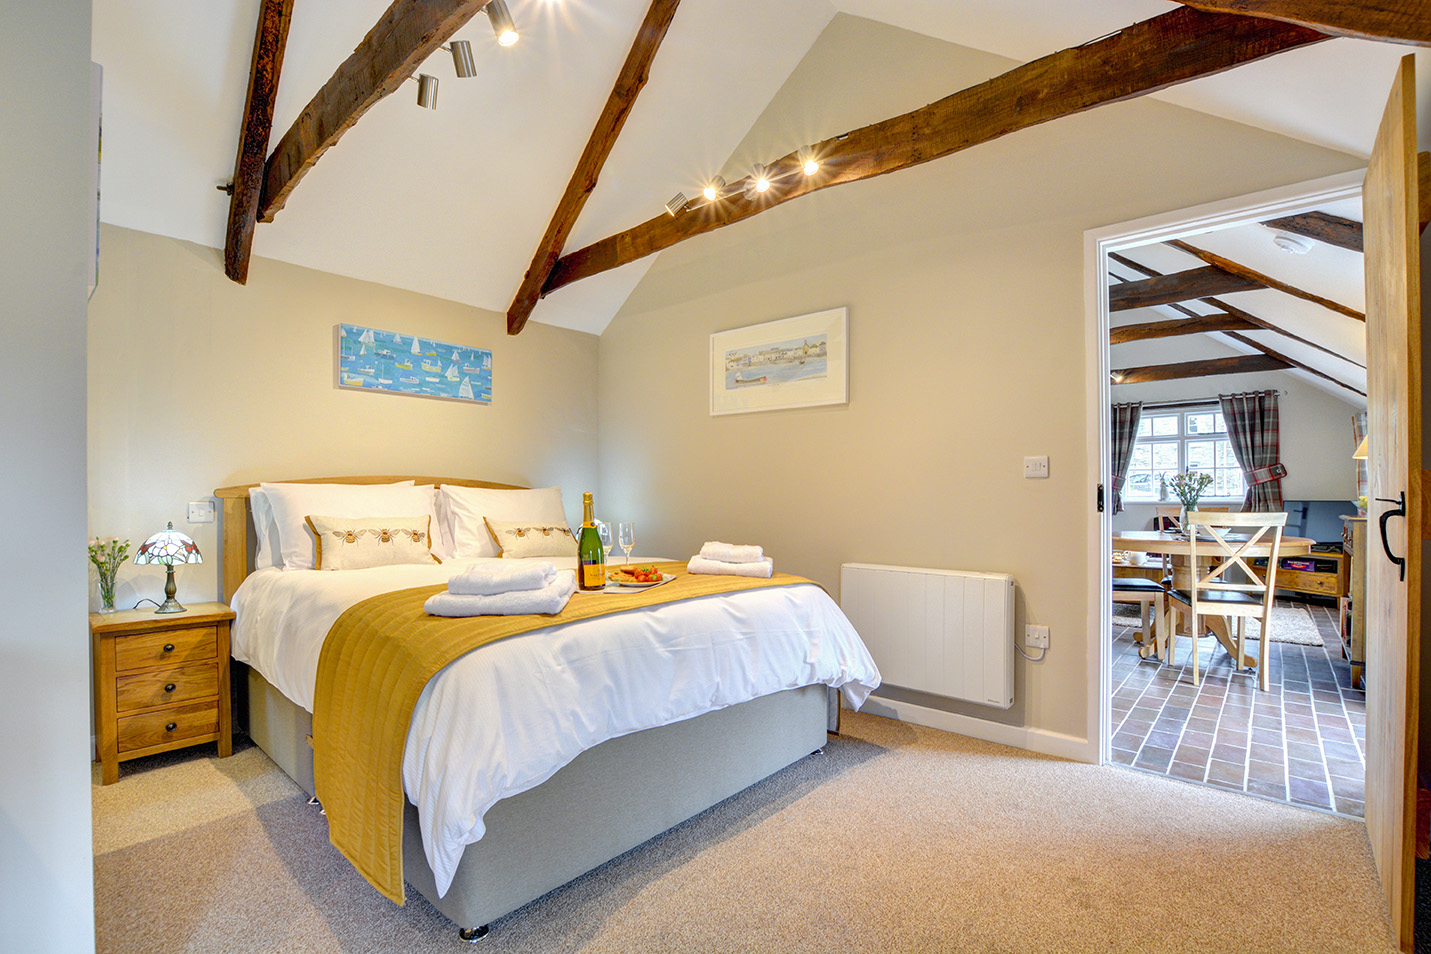 The bedroom of The Linney self catering cottage converted barn at Penrose Burden holiday cottages in Cornwall 02.jpg